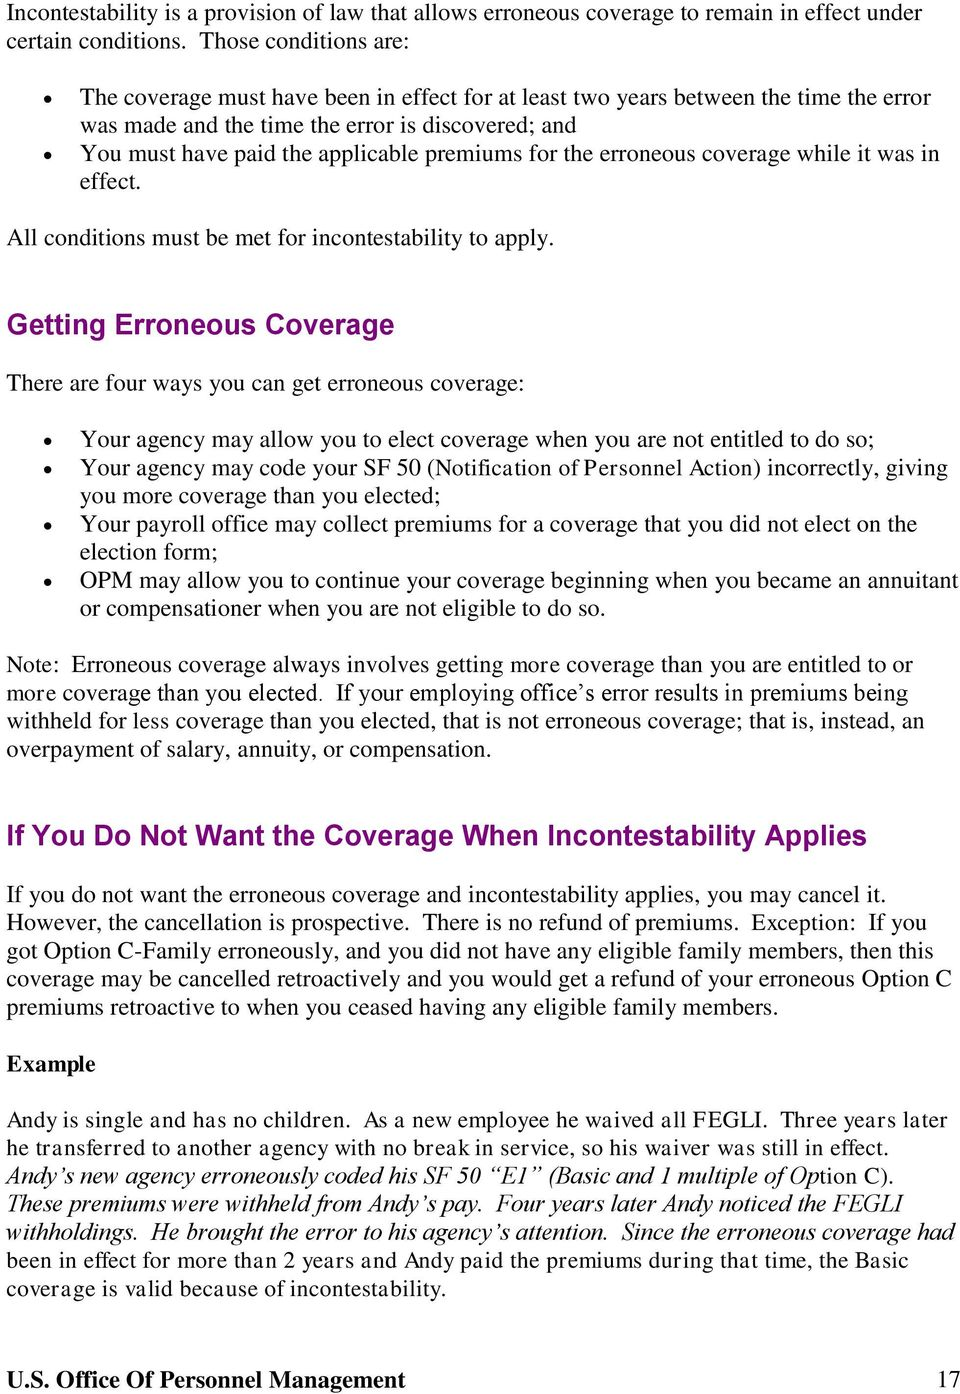 premiums for the erroneous coverage while it was in effect. All conditions must be met for incontestability to apply.